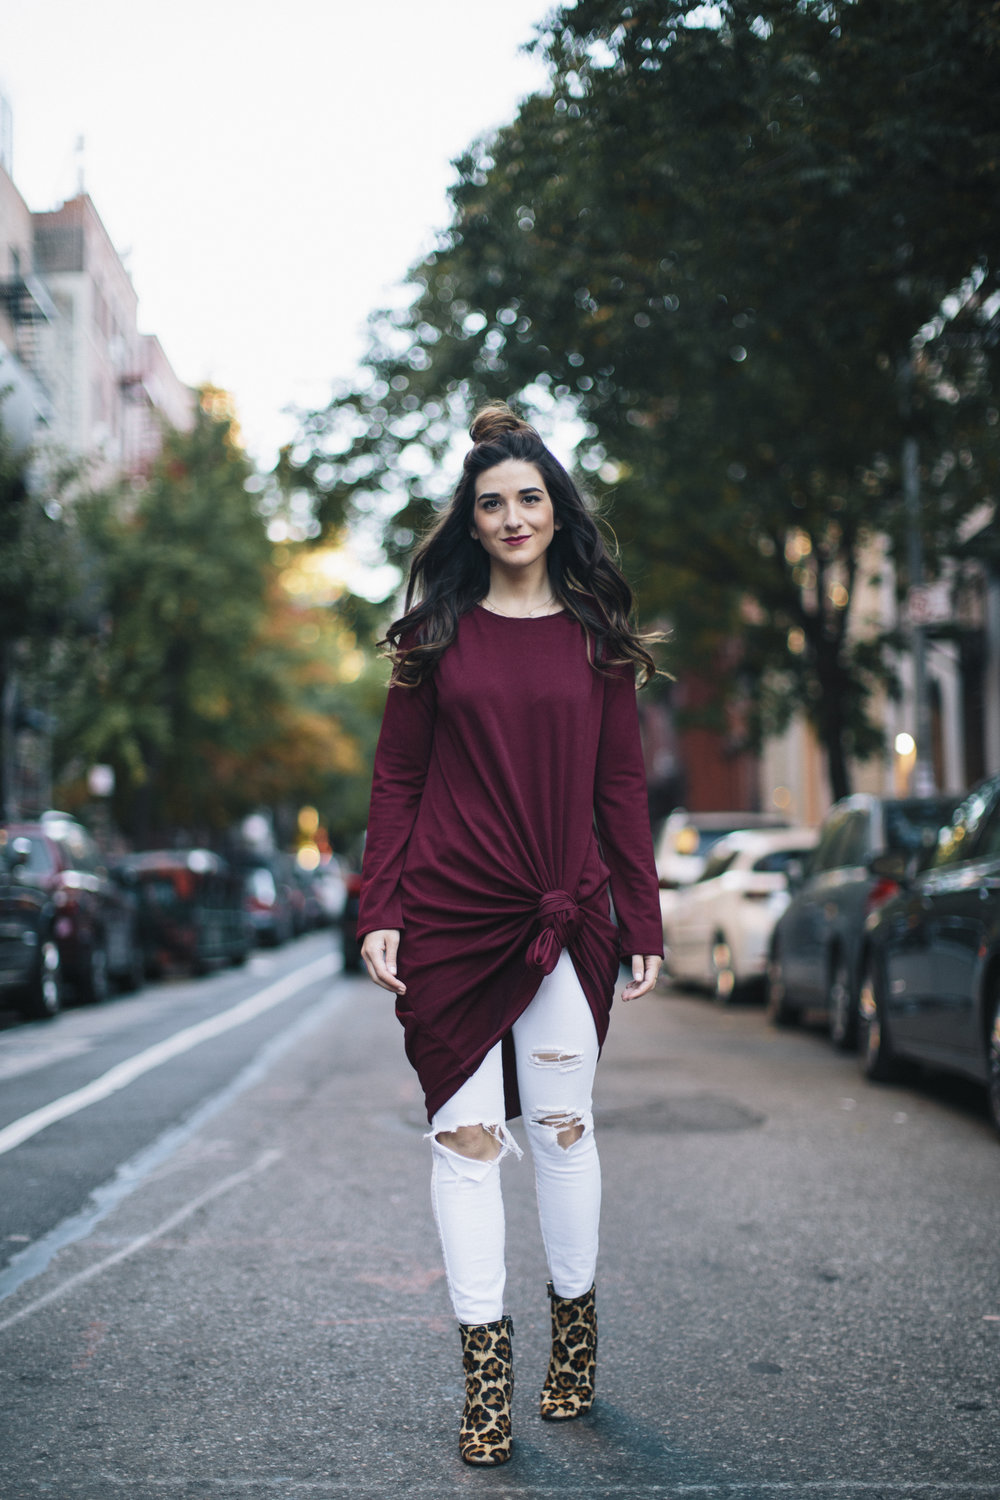 Knotted Dress + Ripped White Jeans 4 Ways To Build Connections Louboutins & Love Fashion Blog Esther Santer NYC Street Style Blogger Outfit OOTD Trendy Red Maroon Burgundy Winter Wear Color Leopard Coach Shoes Booties Pants Topknot Hair Bun Women Girl.jpg